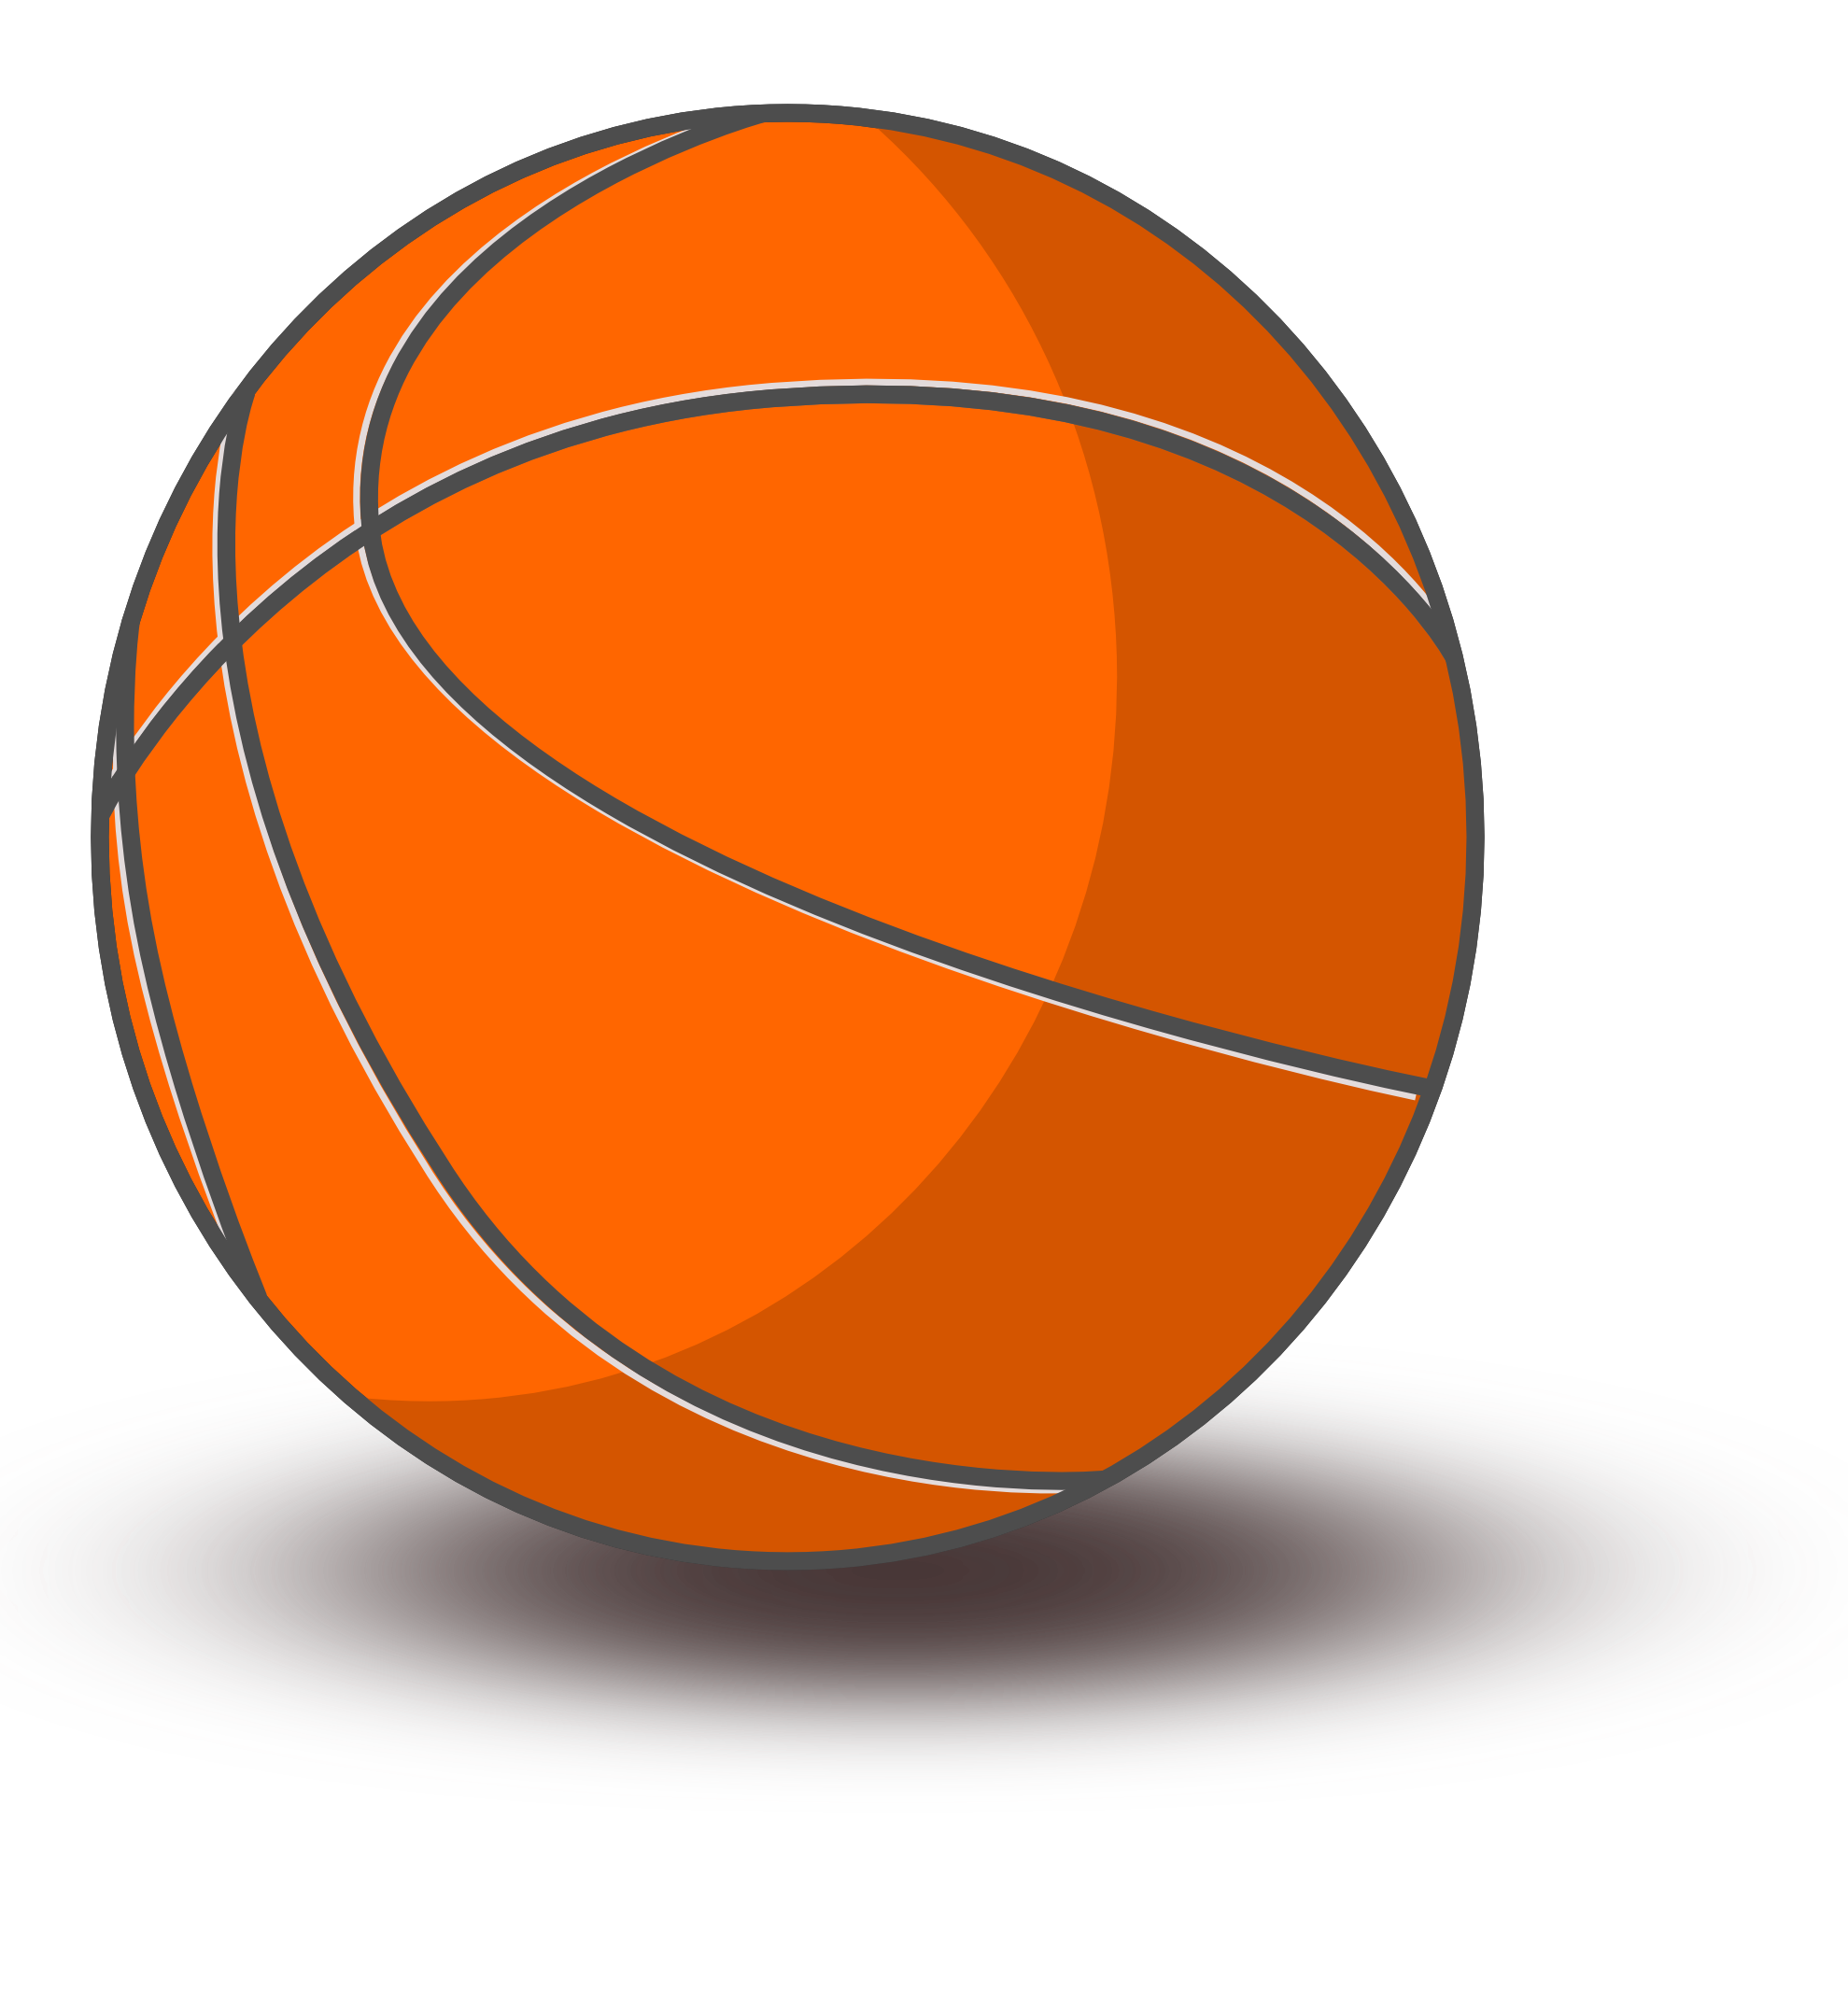 Basketball transparent png. Background free icons and